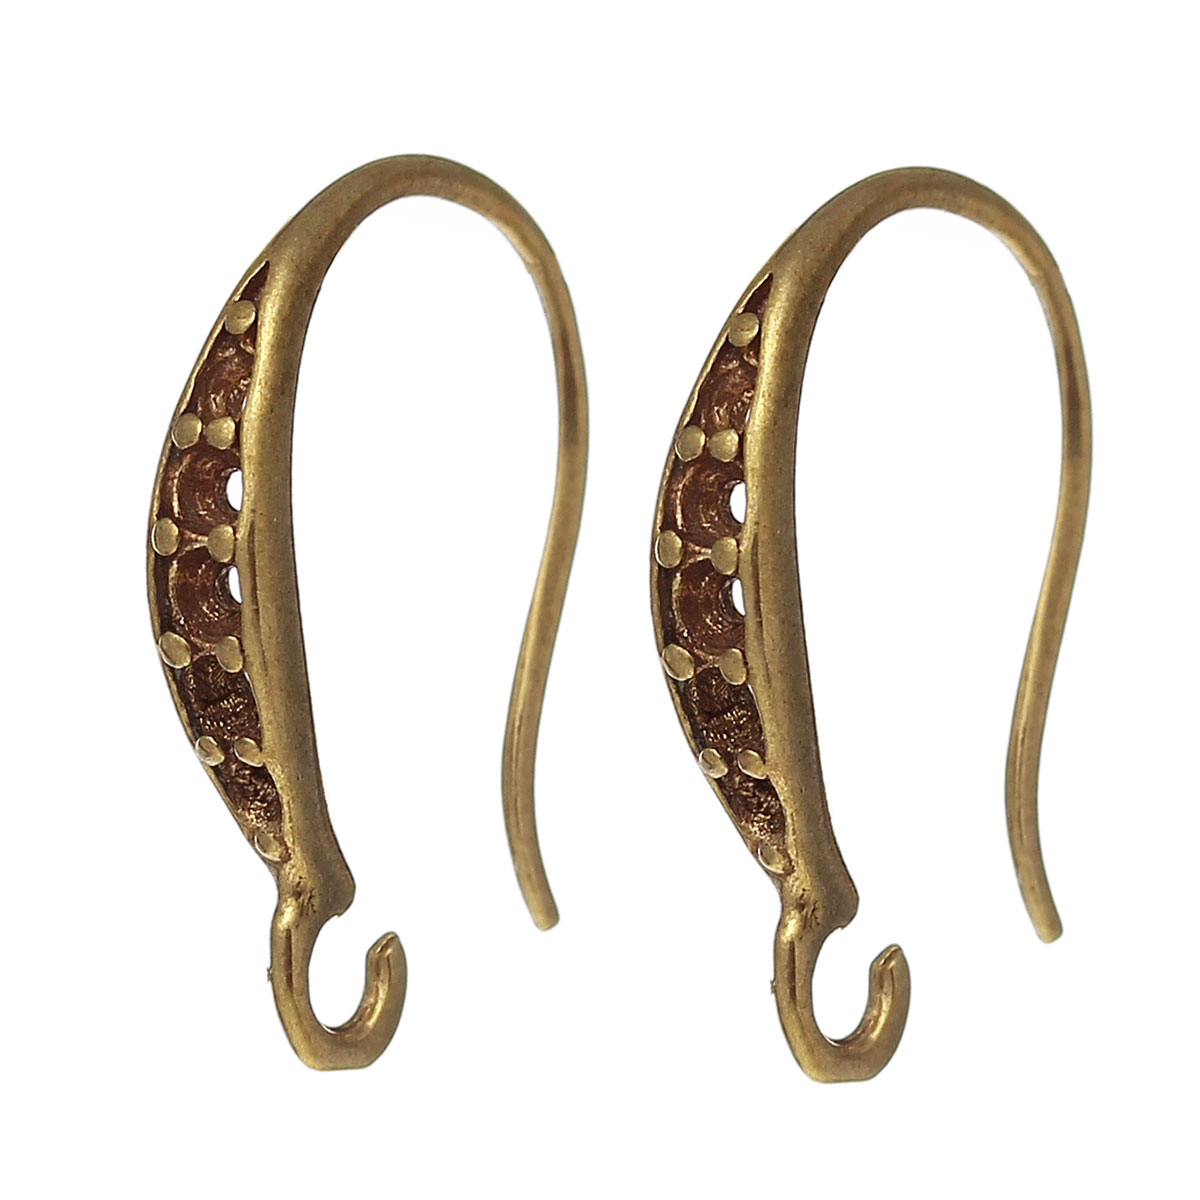 8SEASONS Copper Earring Components Hooks U-shaped Brass Tone (Fits ss6 ss5 ss4 Rhinestone) 17mm( 5/8) x 9mm( 3/8),10 Pairs